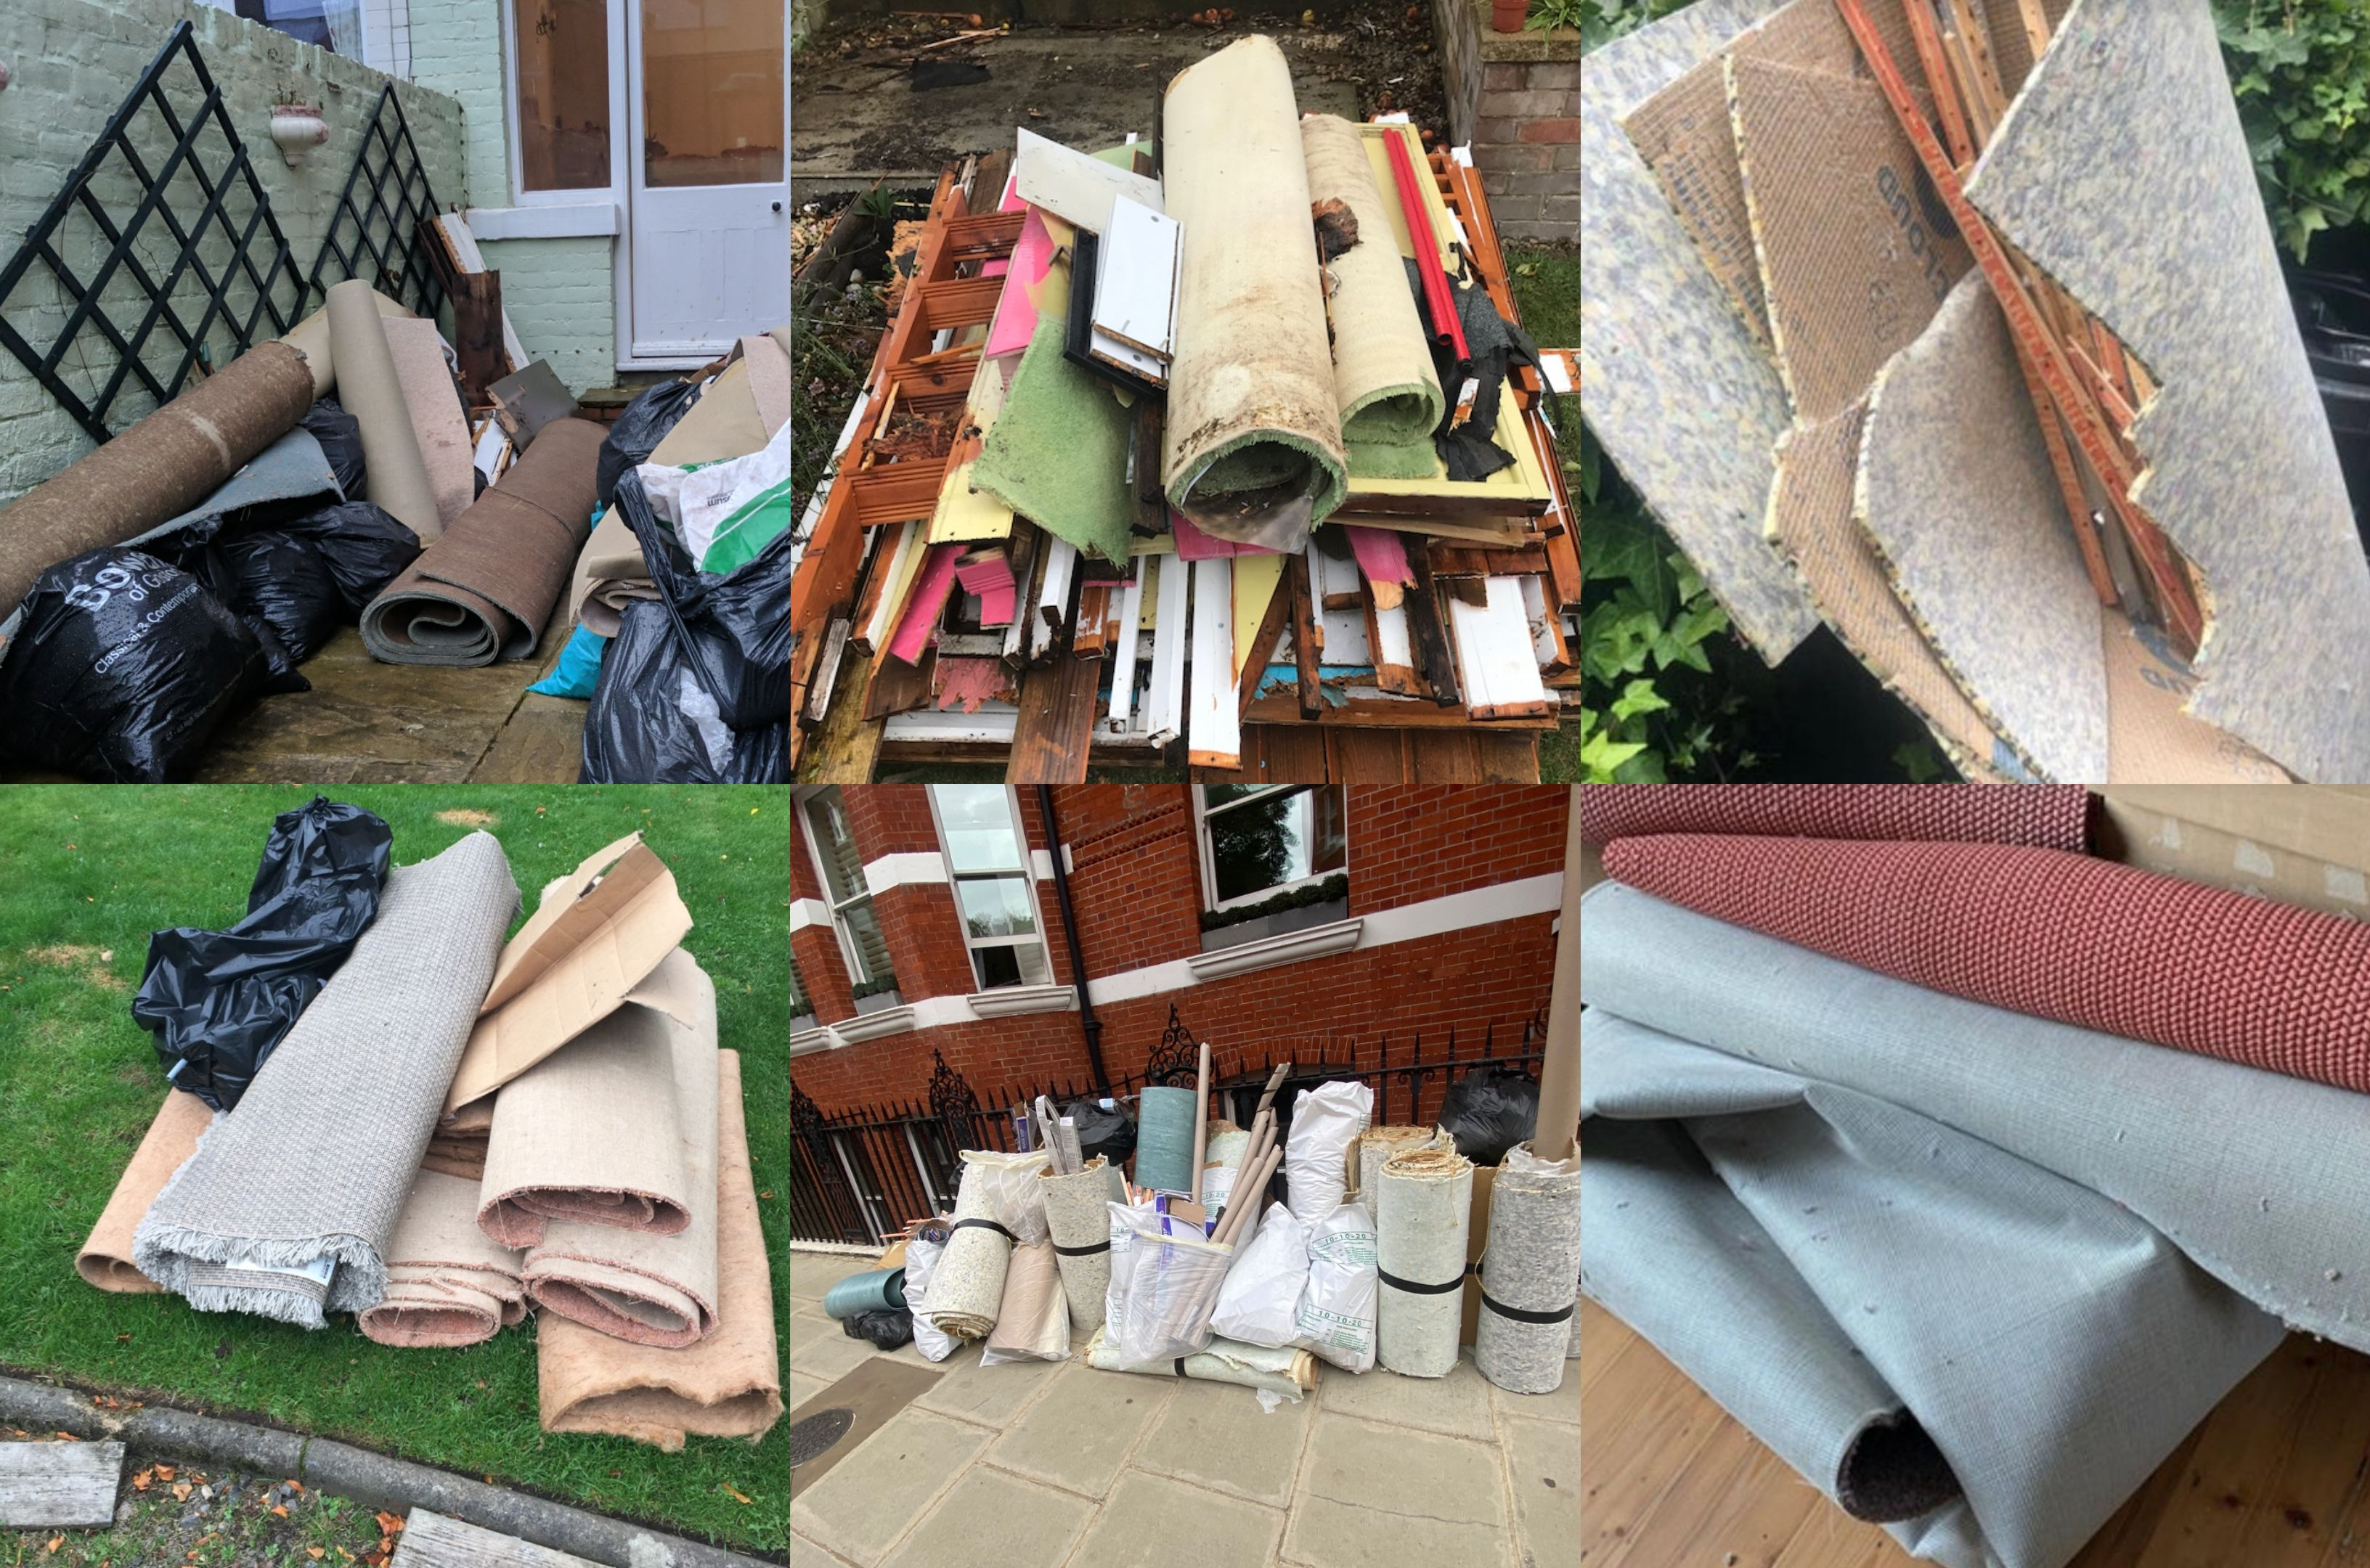 collage of carpets ready for collection and disposal how to dispose of carpets lovejunk